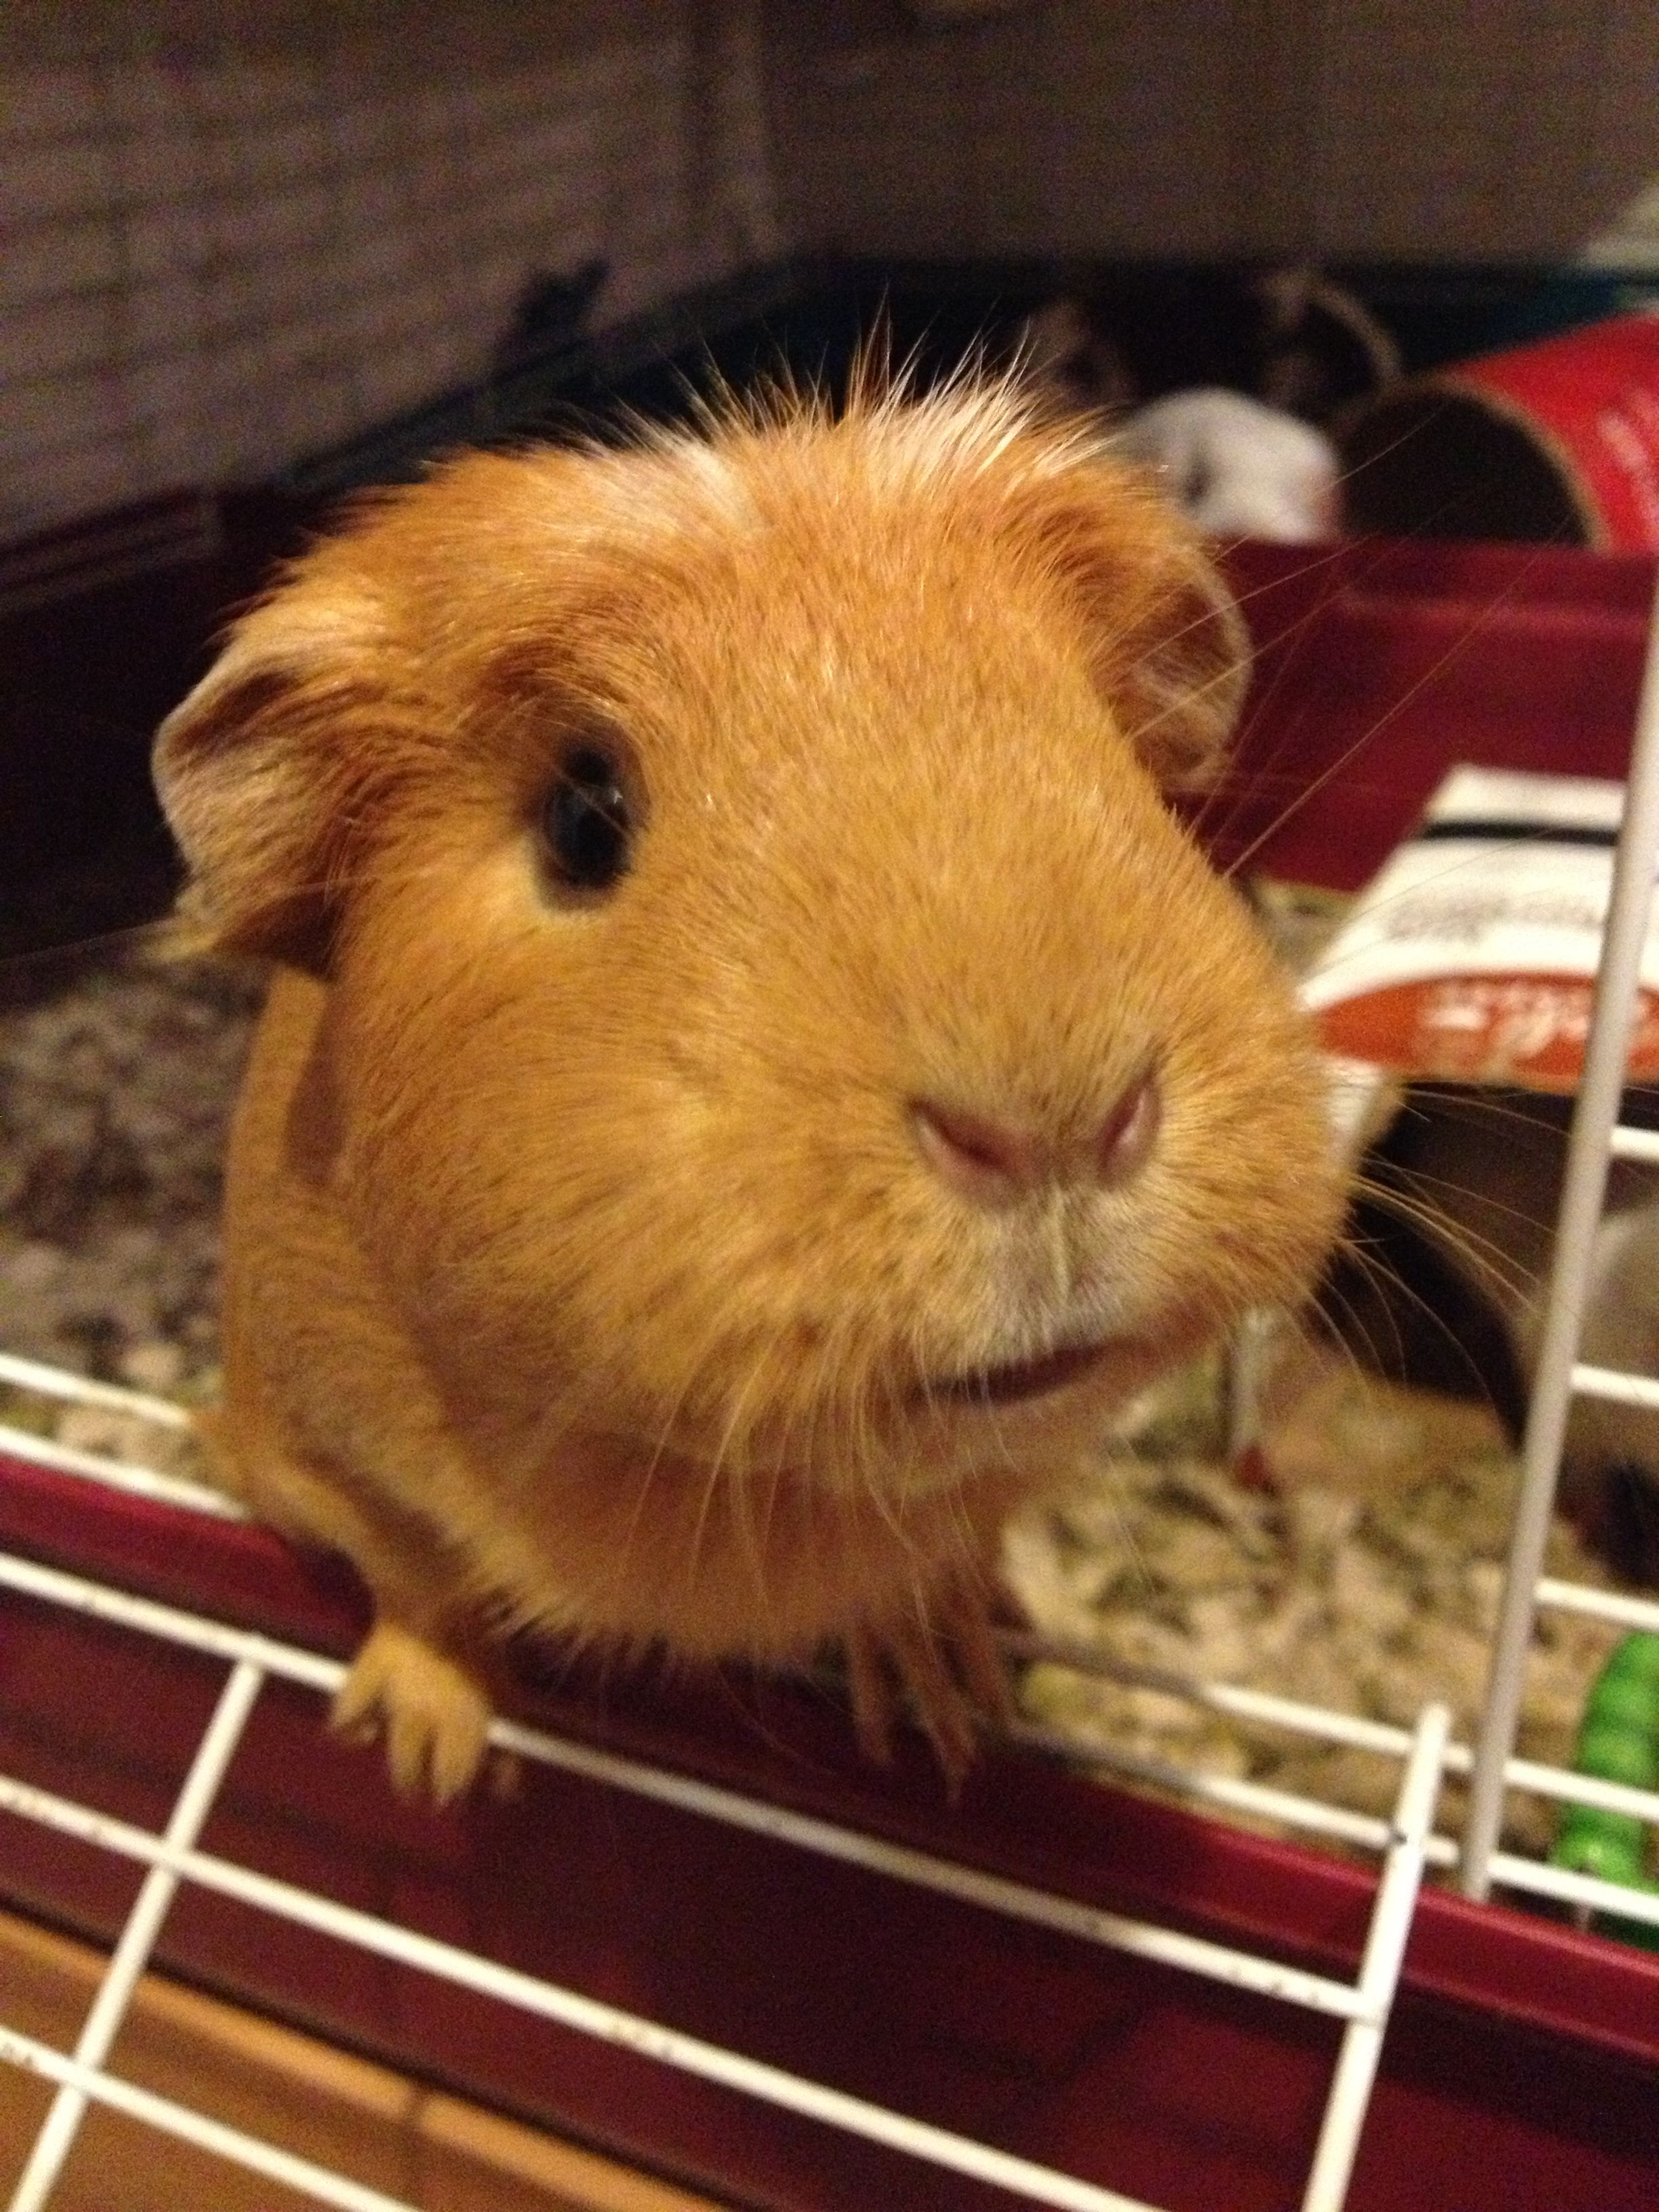 Hippo the Guinea Pig!...........OMG if I get another someday, I may have to name it hippo!